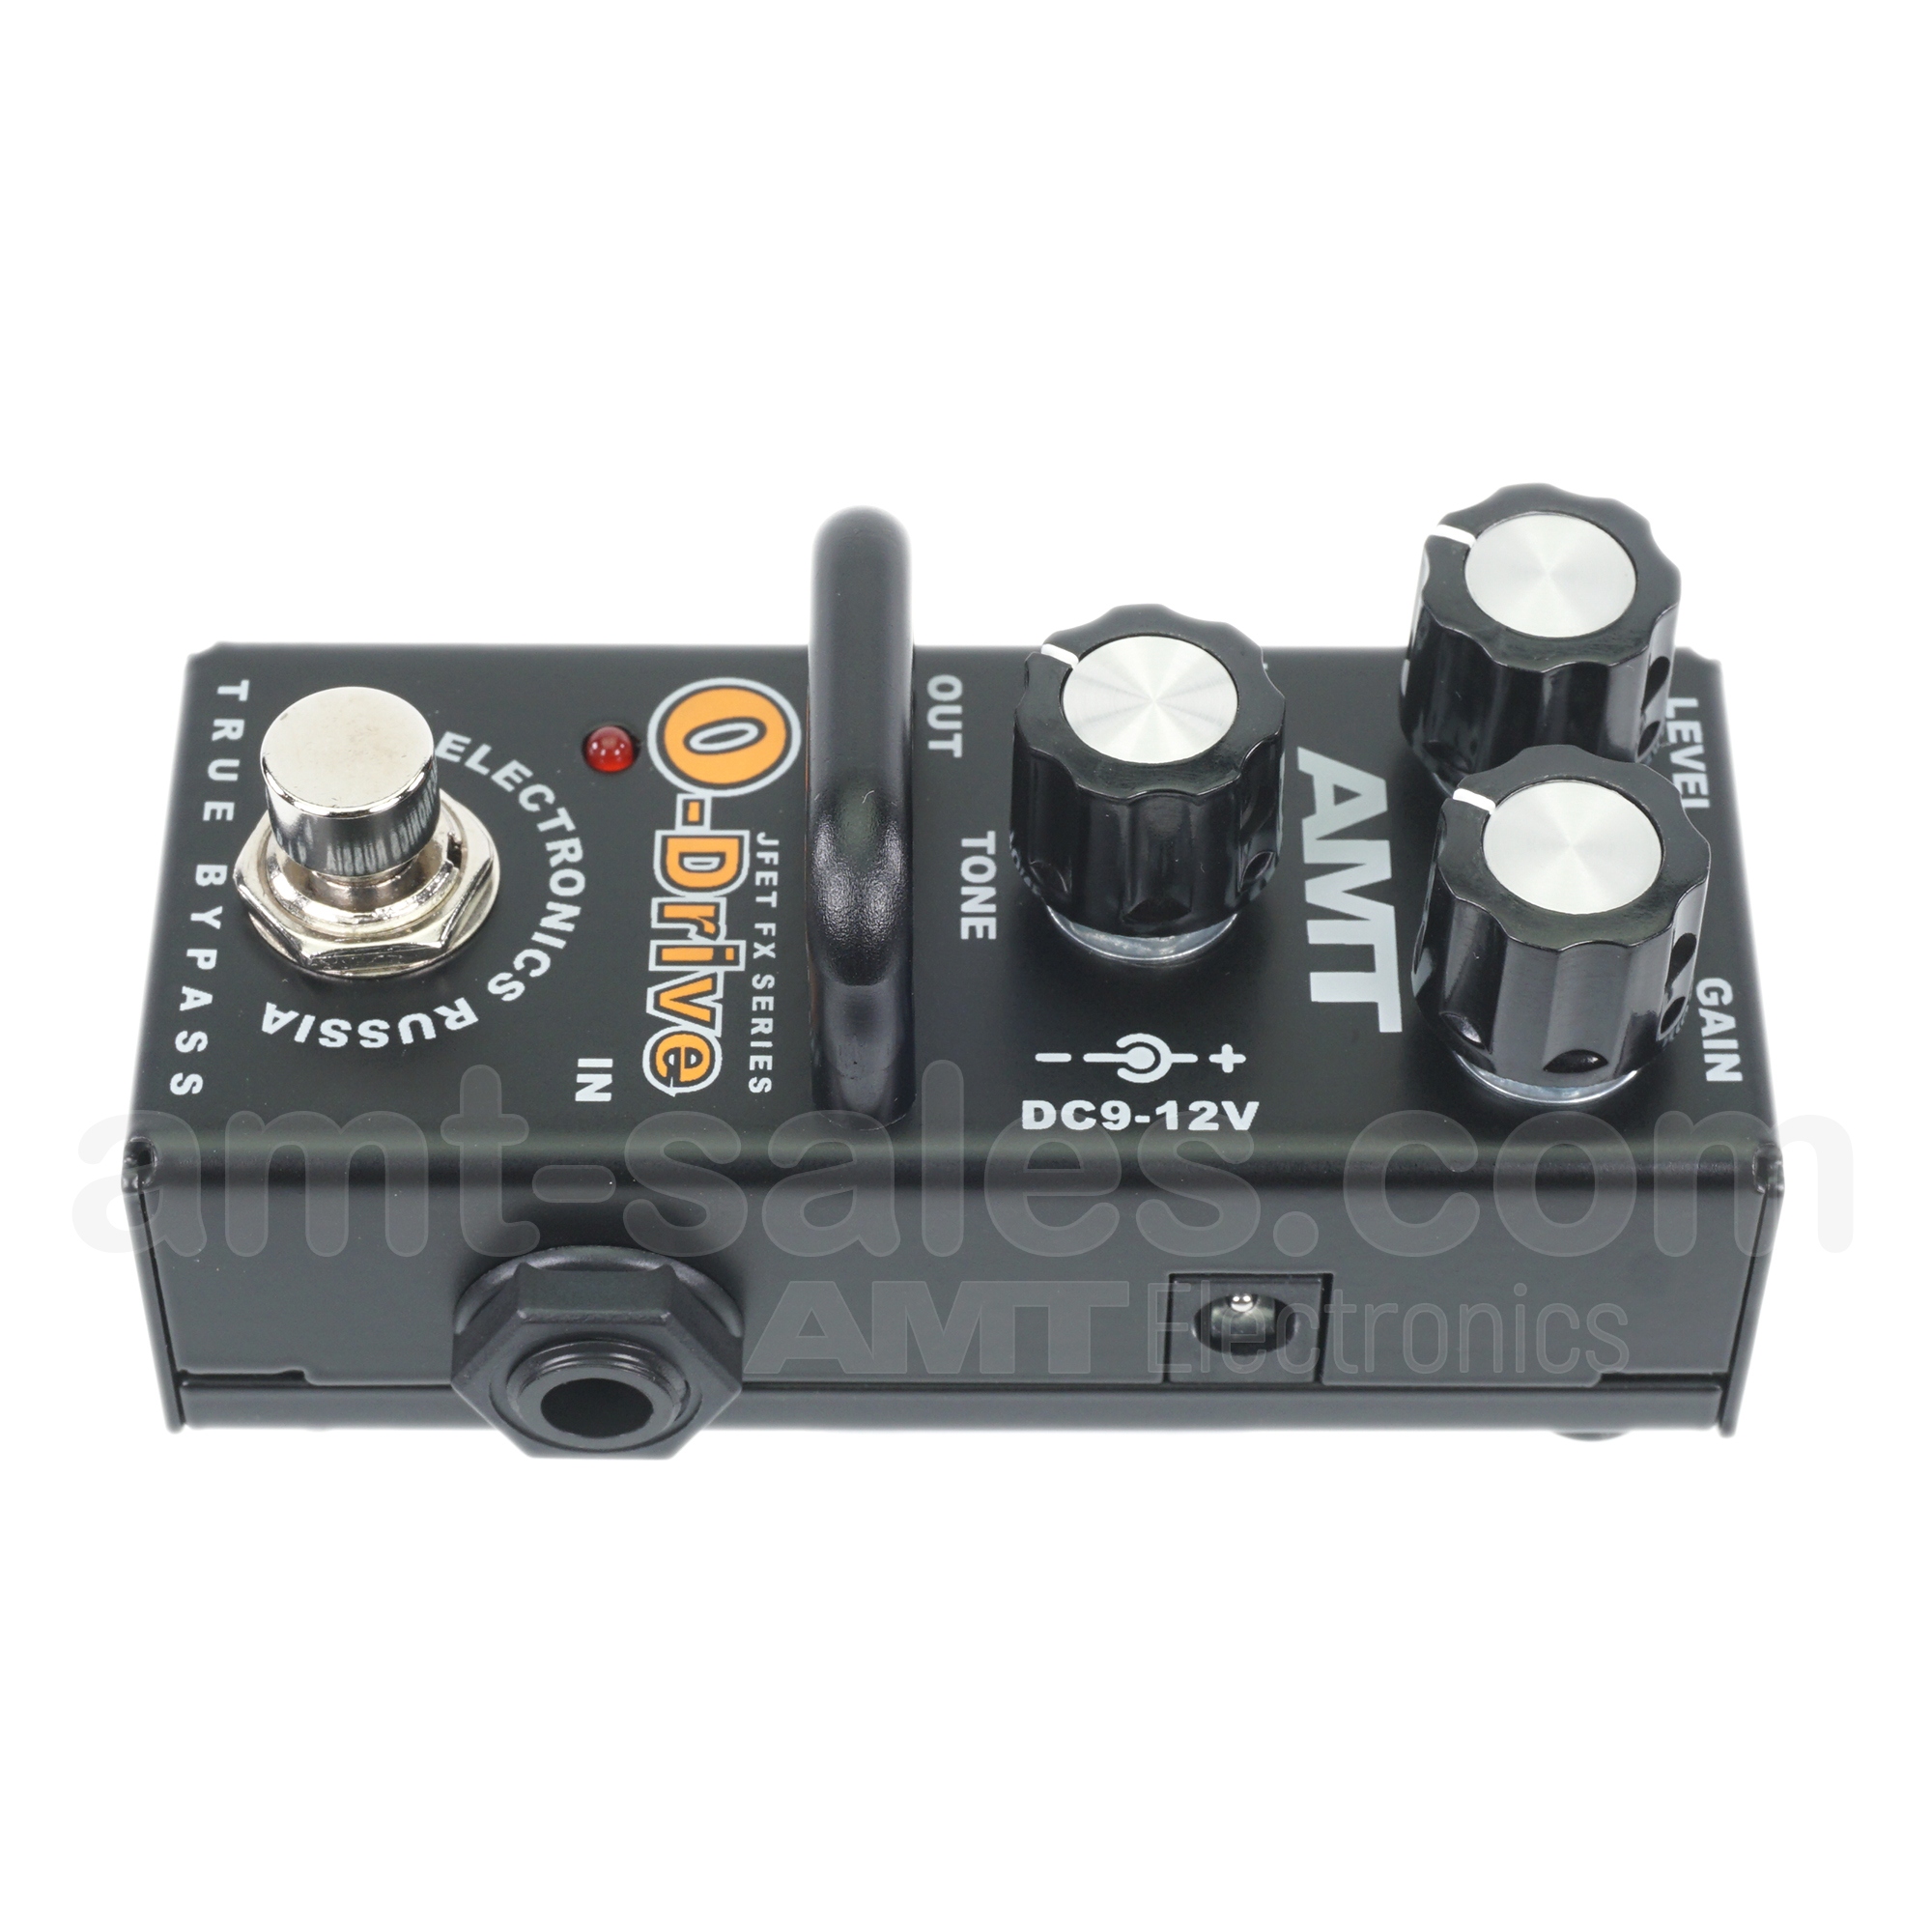 AMT O-Drive mini - JFET distortion pedal